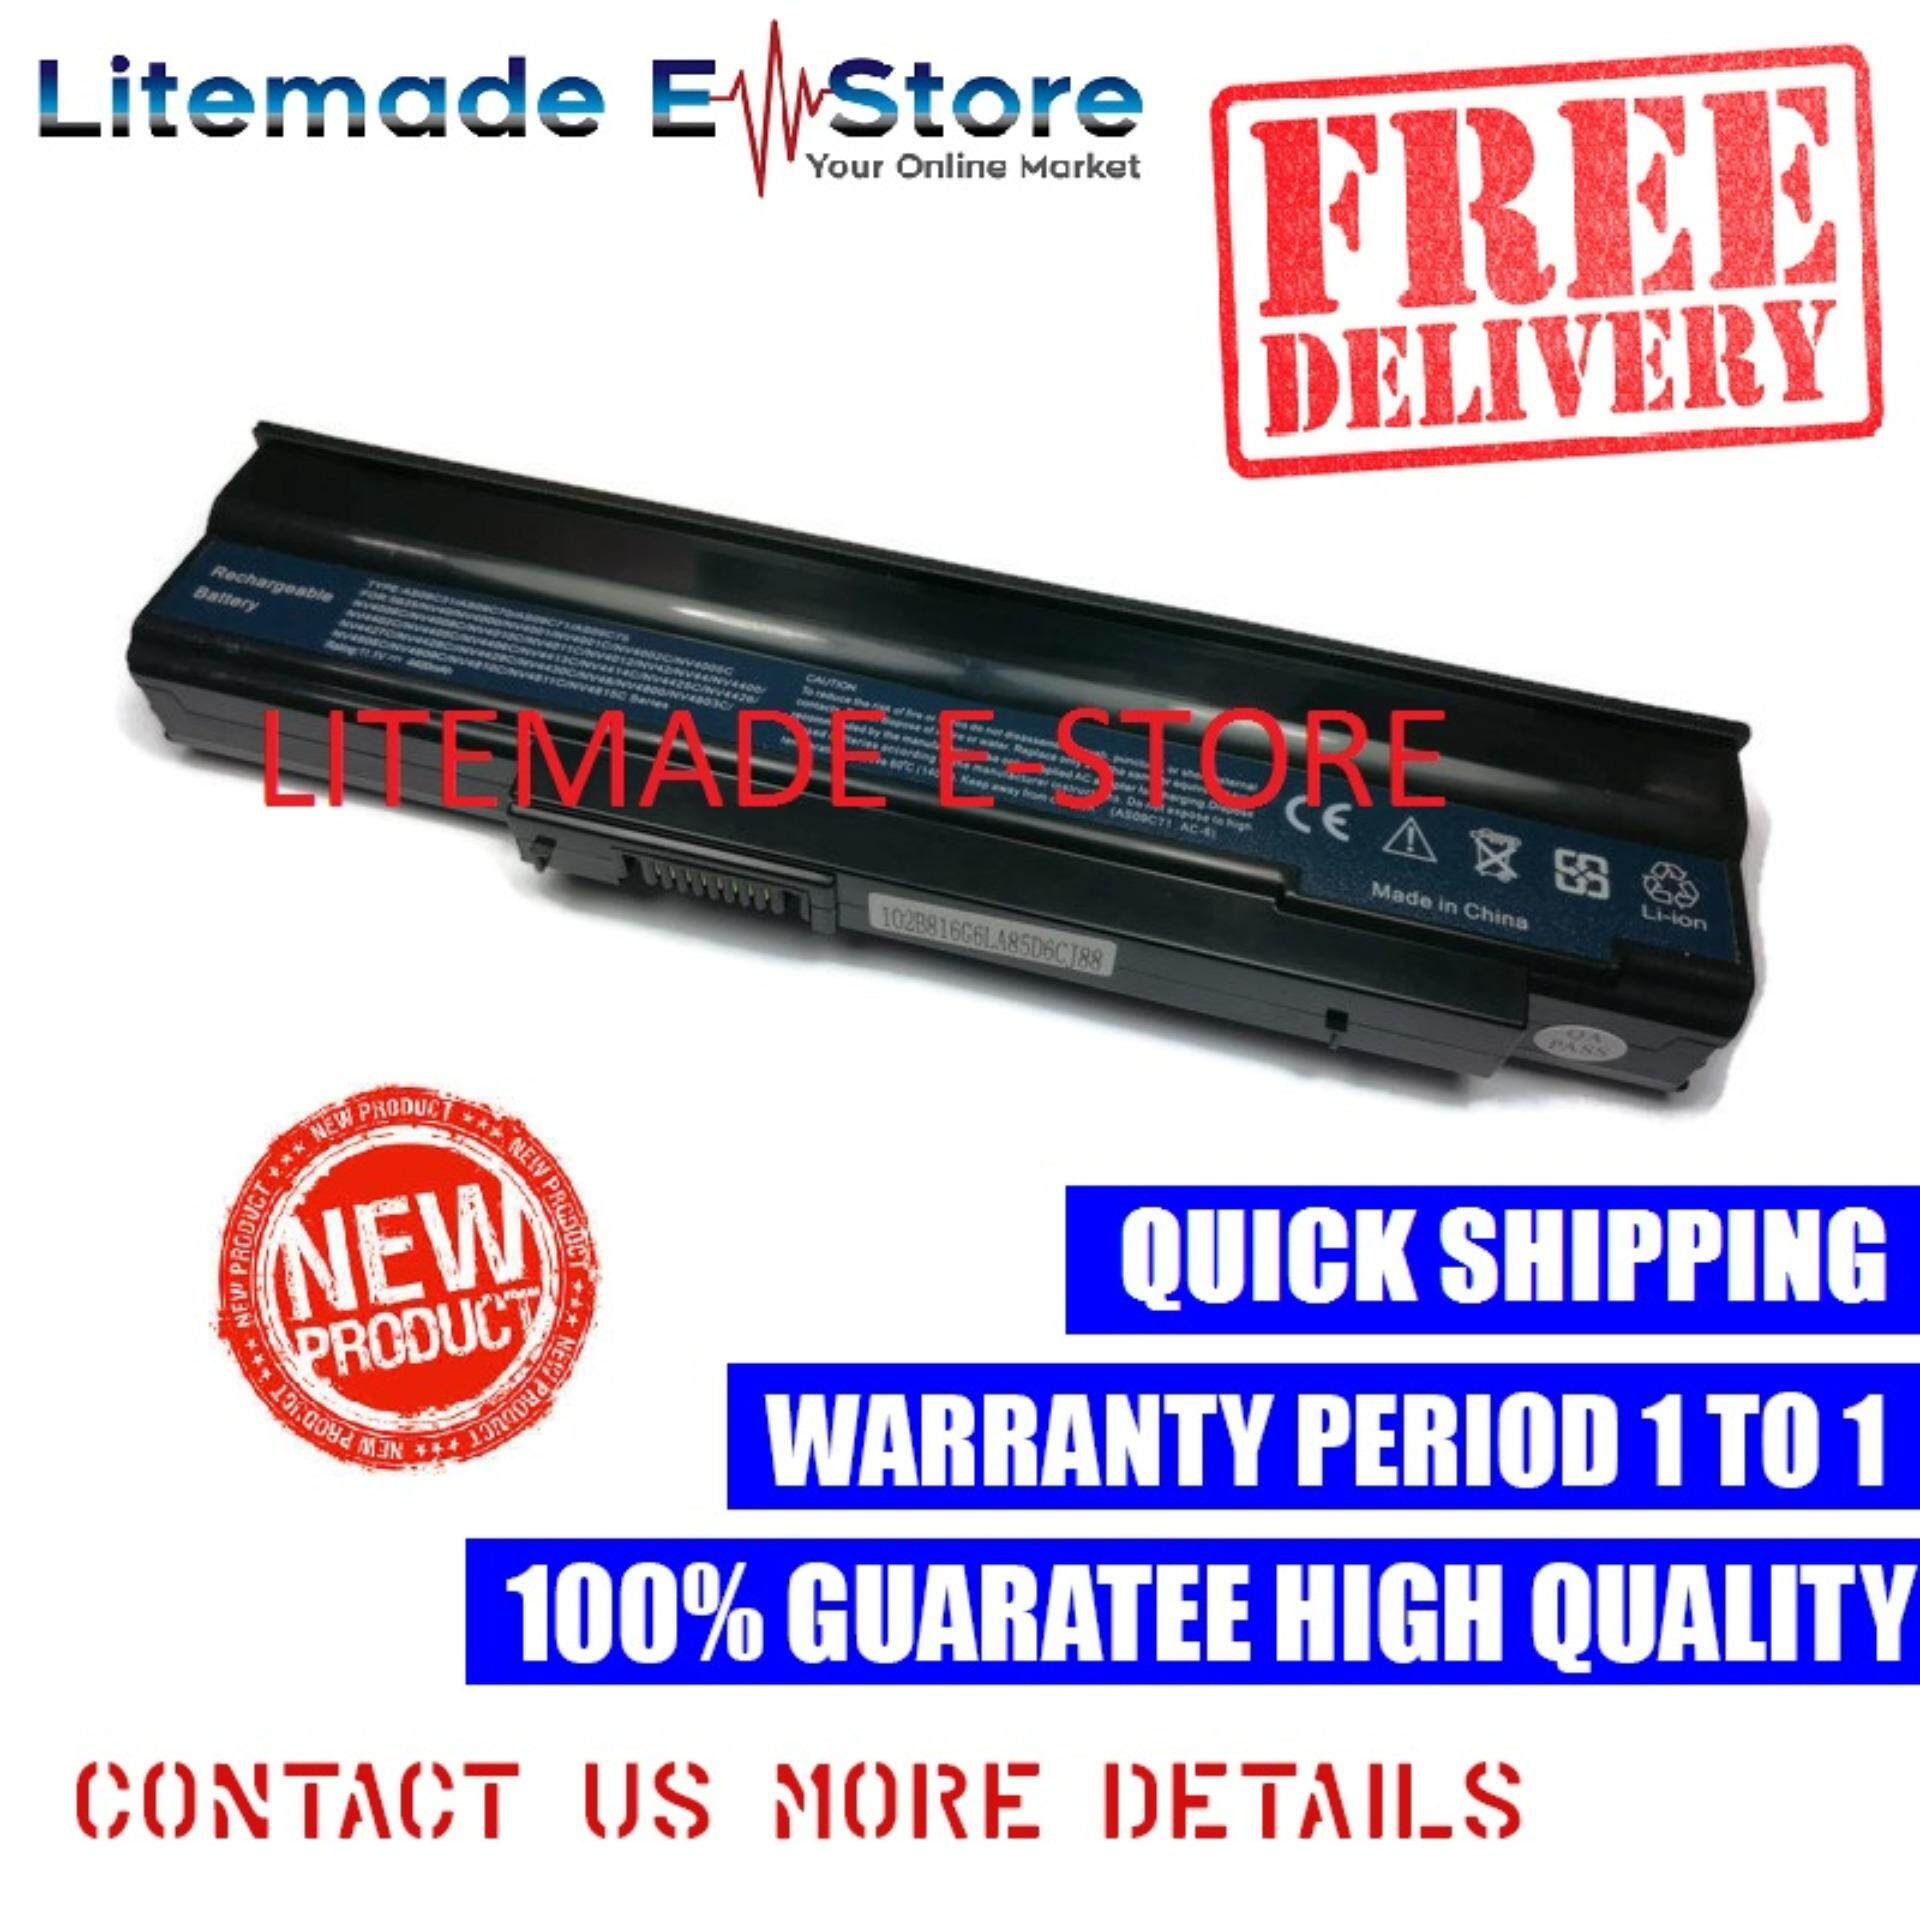 Acer Extensa 5220-201G08 Laptop Battery